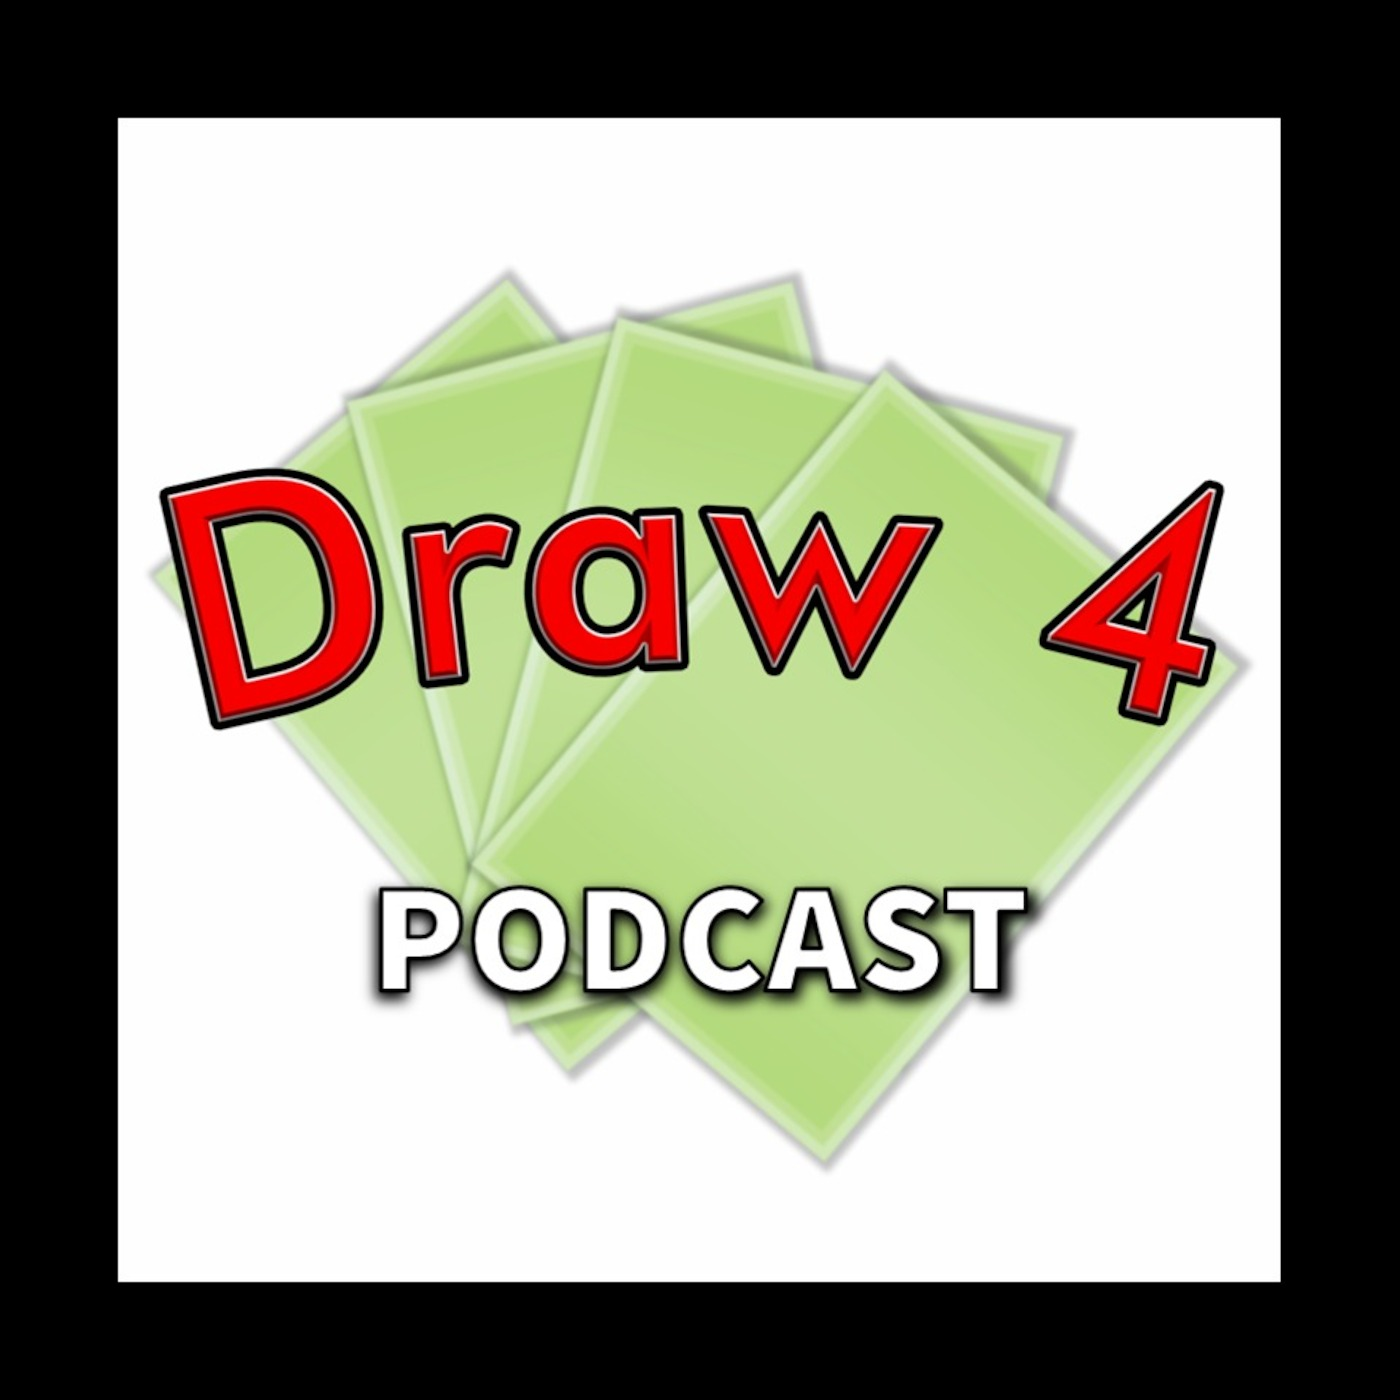 Draw 4 Podcast